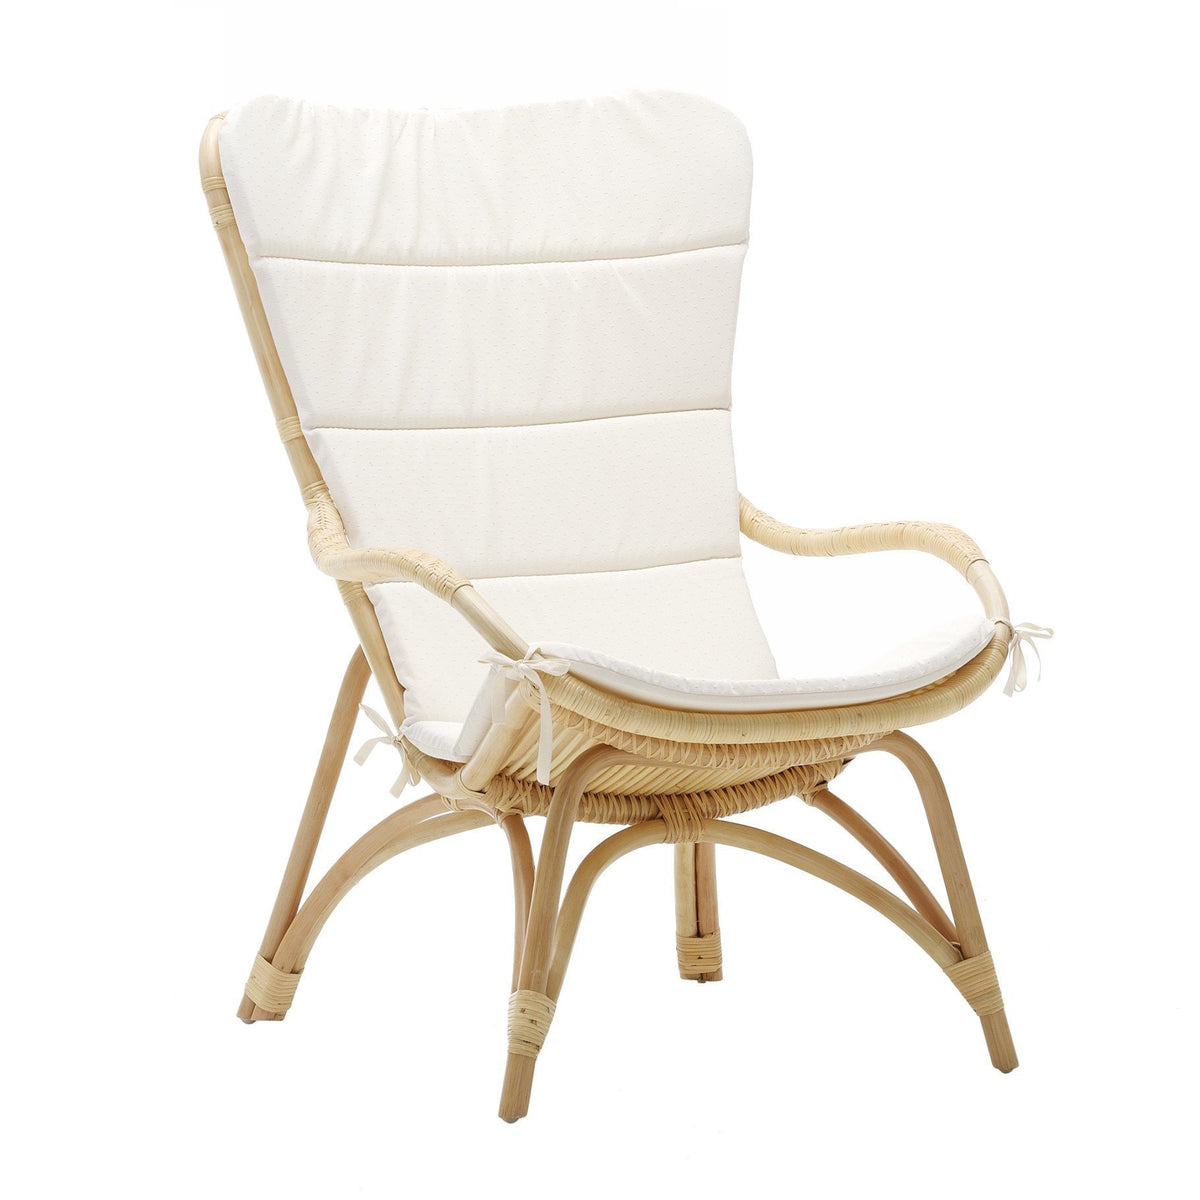 Sika Design Monet High Back Chair - Natural